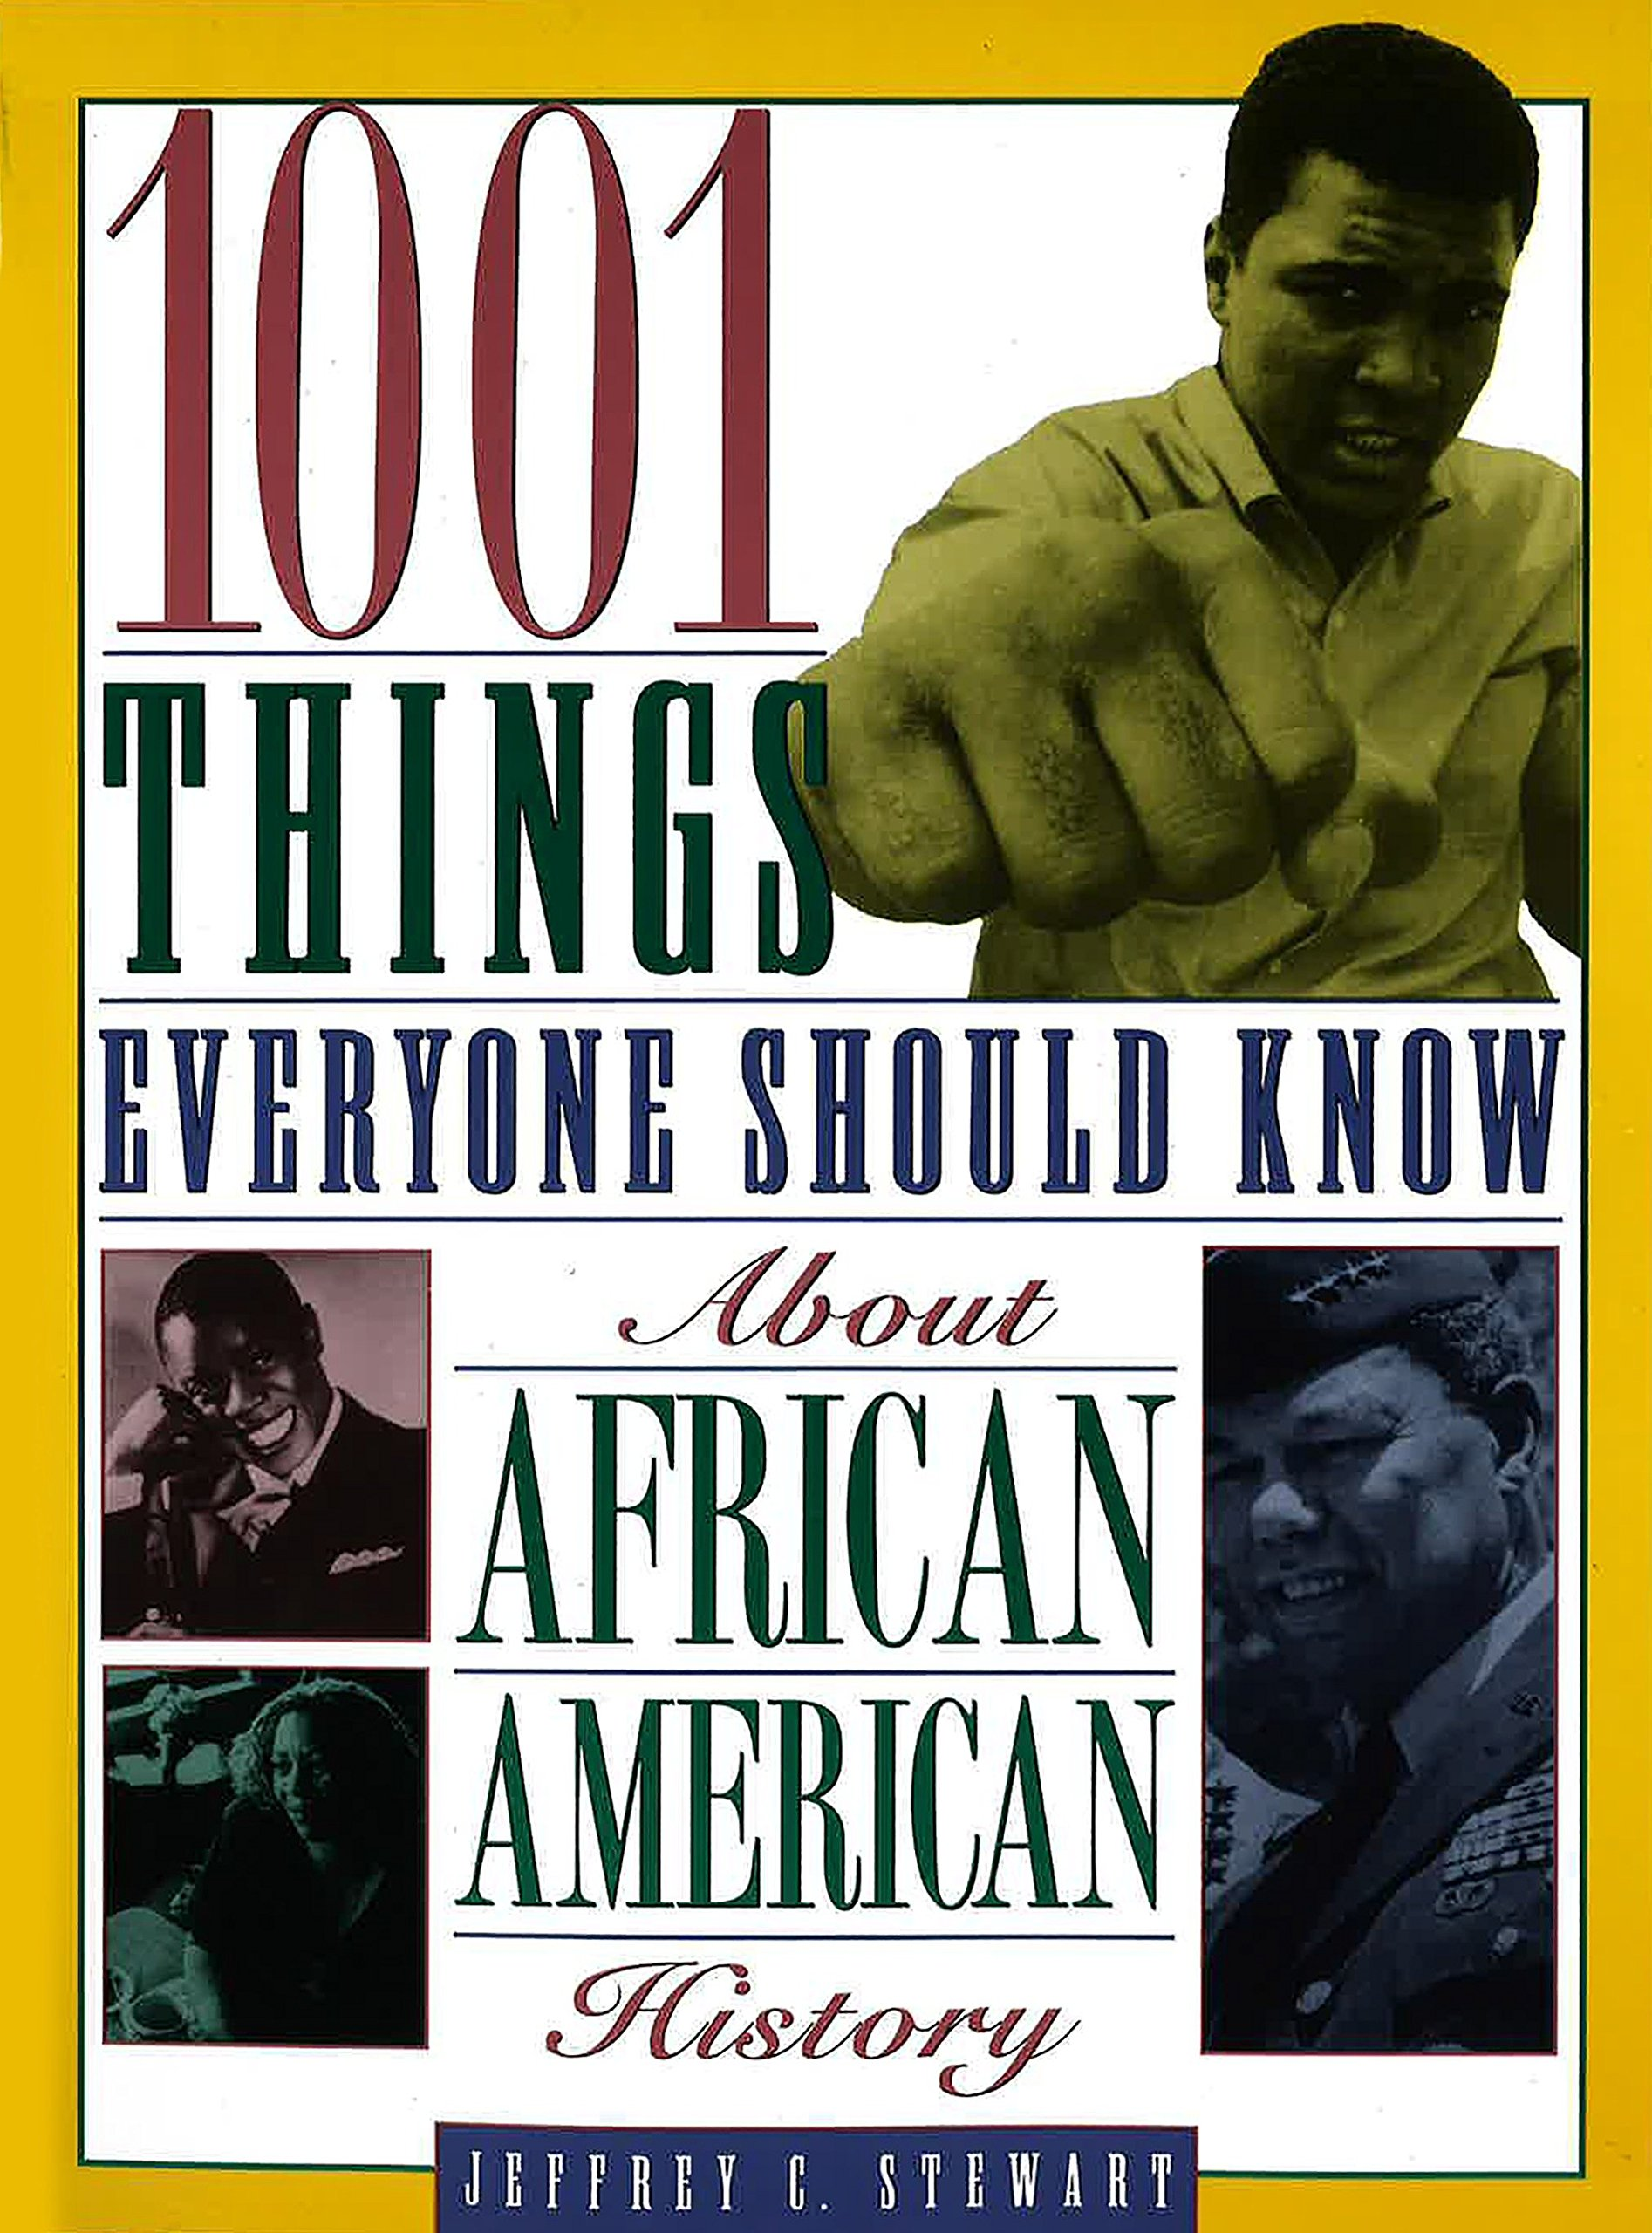 1001 Things Everyone Should Know About African American History: Jeffrey C.  Stewart: 9780385485760: Amazon.com: Books